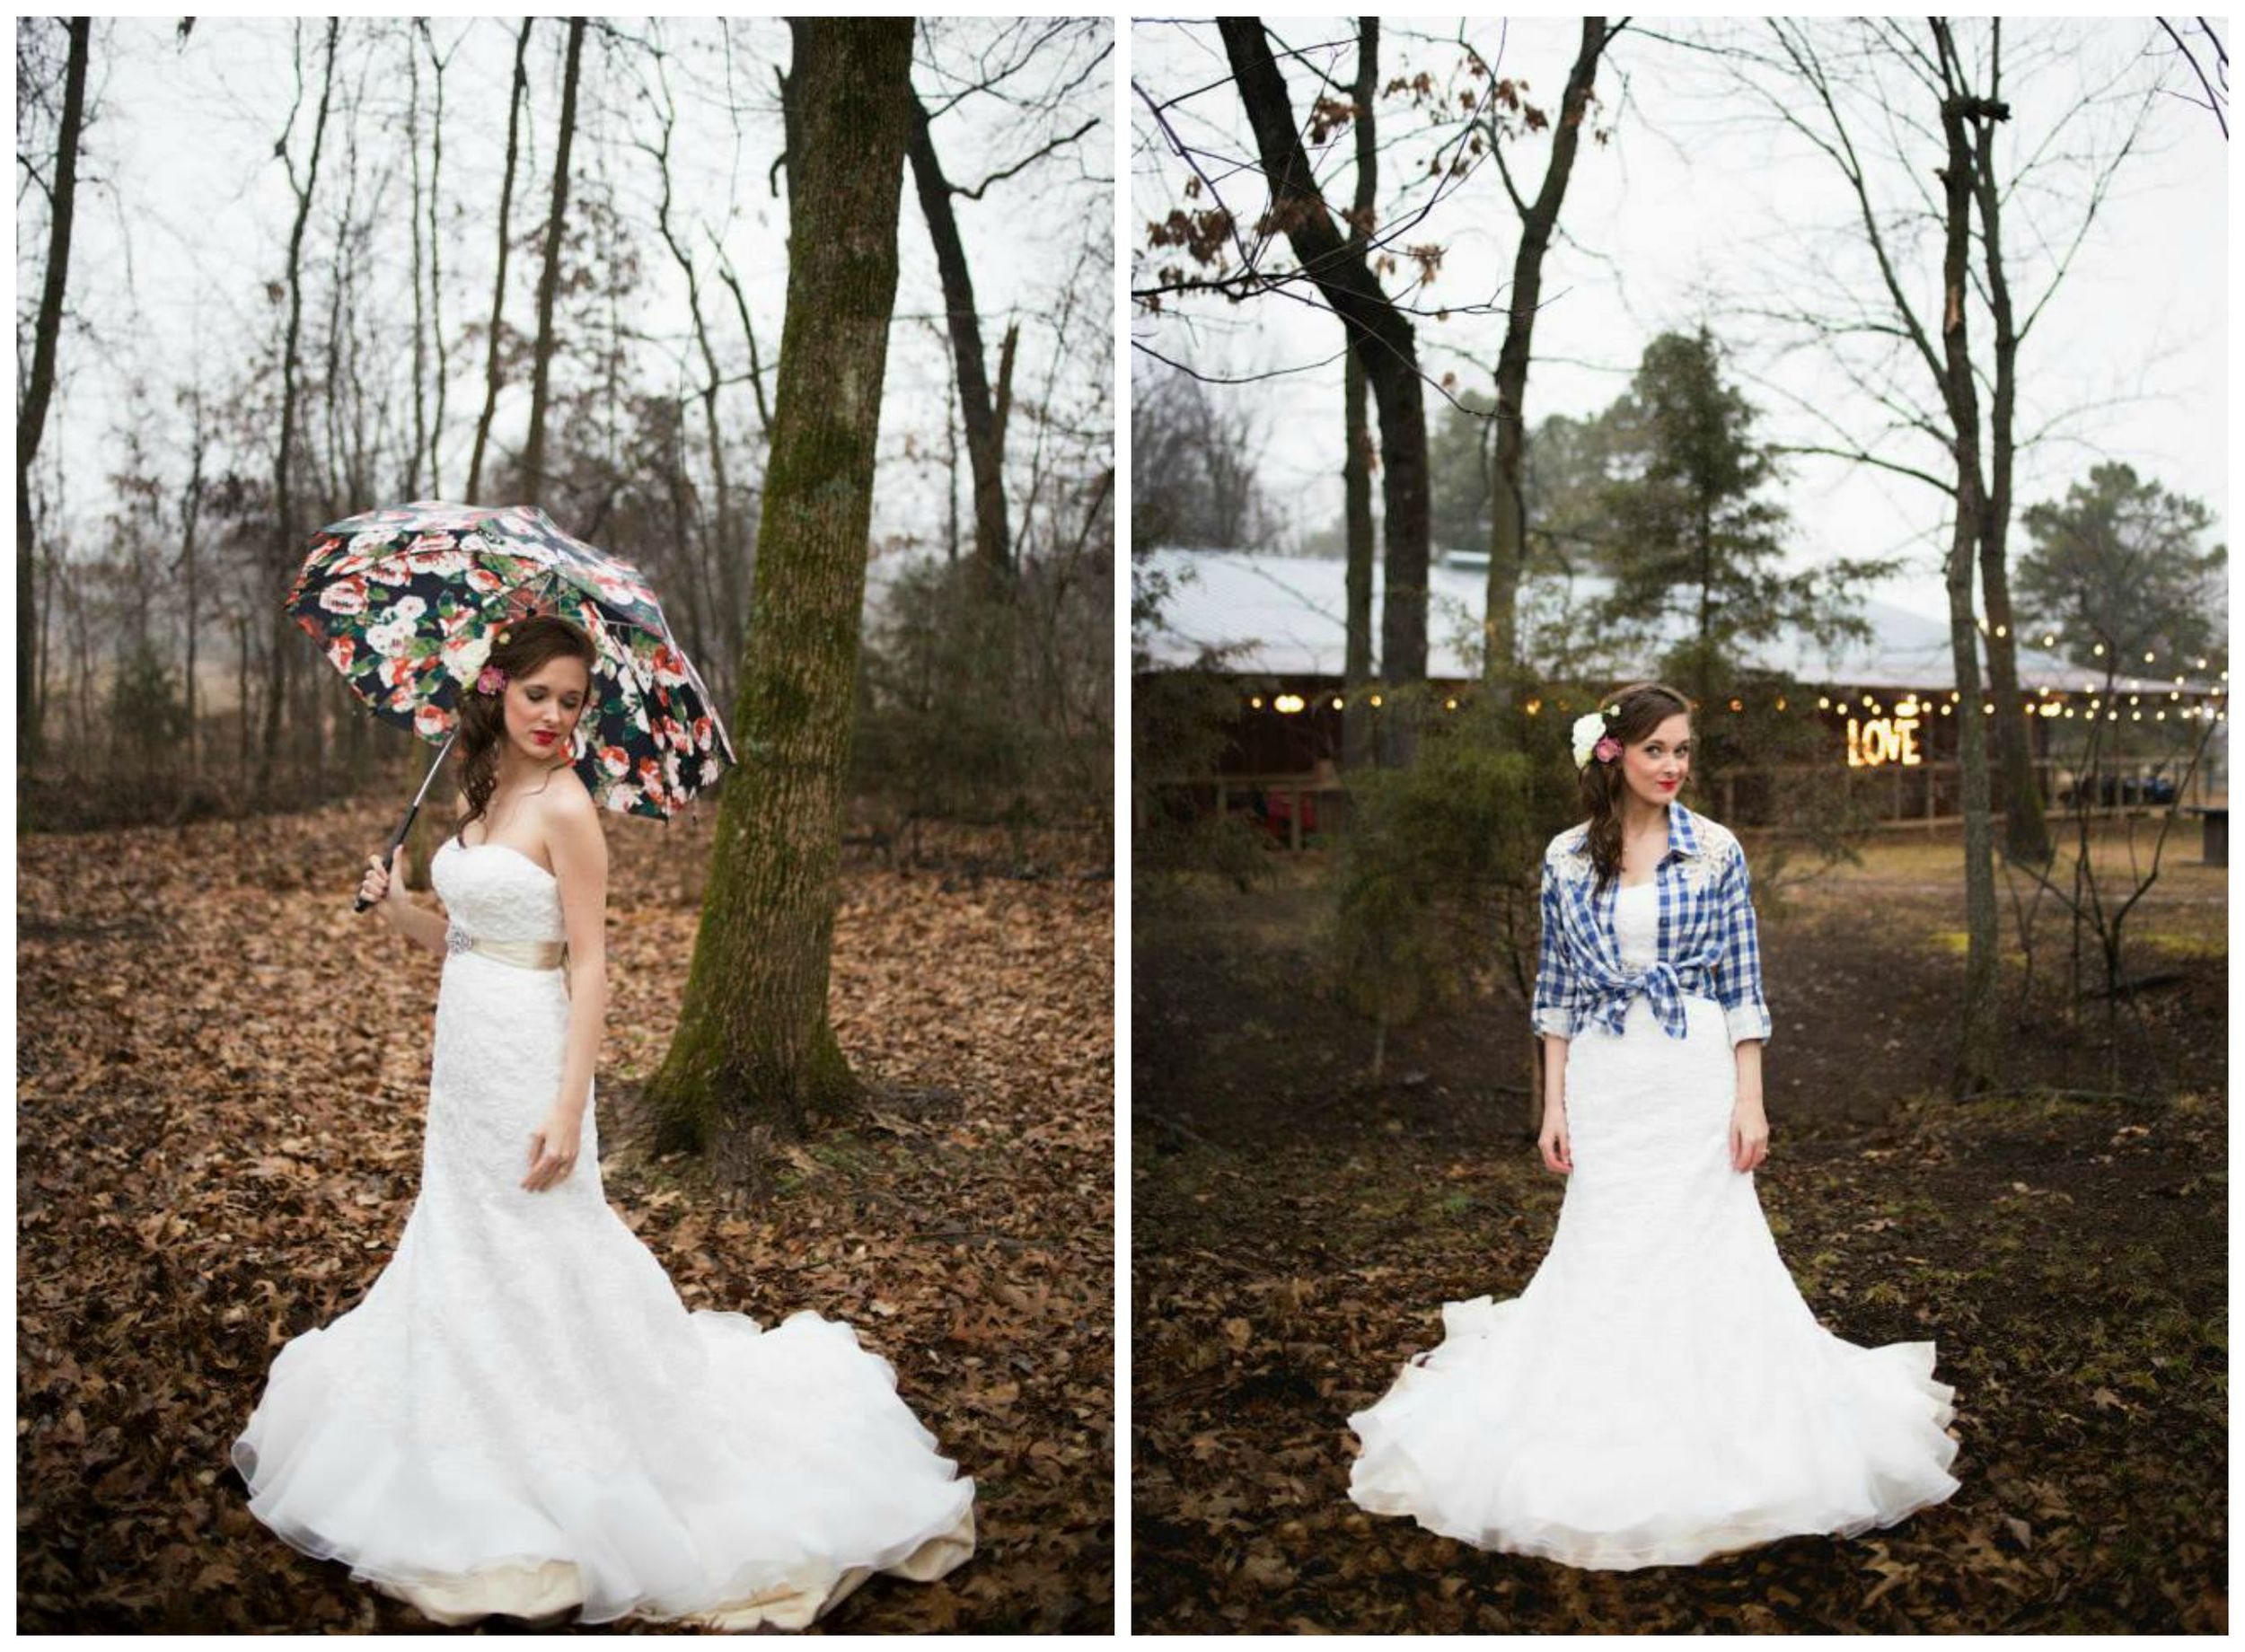 Pictures by Katie , from Kelsey's bridal session. Rainy day bridals can be just as pretty! And accessorizing your dress with plaid is always a good idea.